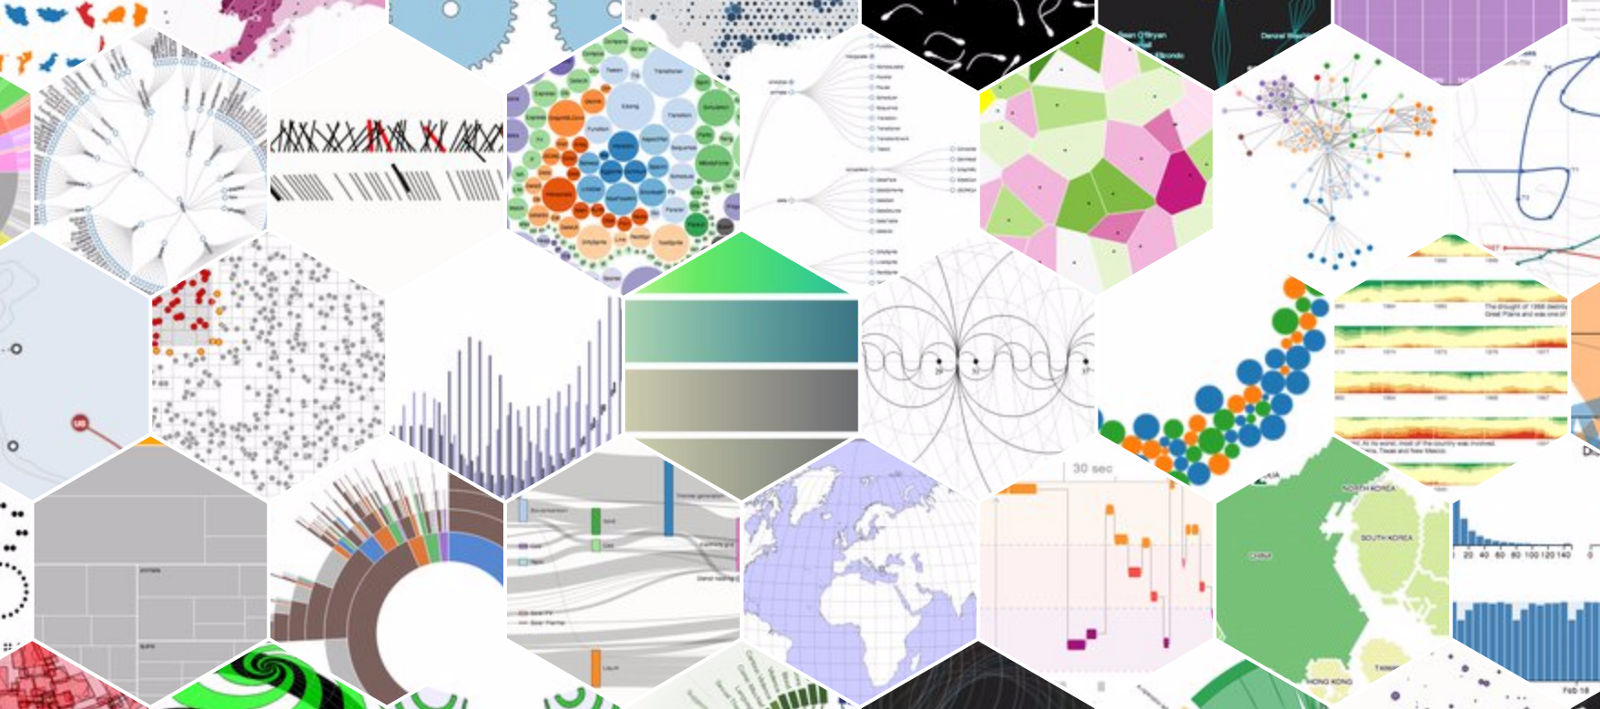 Automatically generate beautiful visualizations from your data